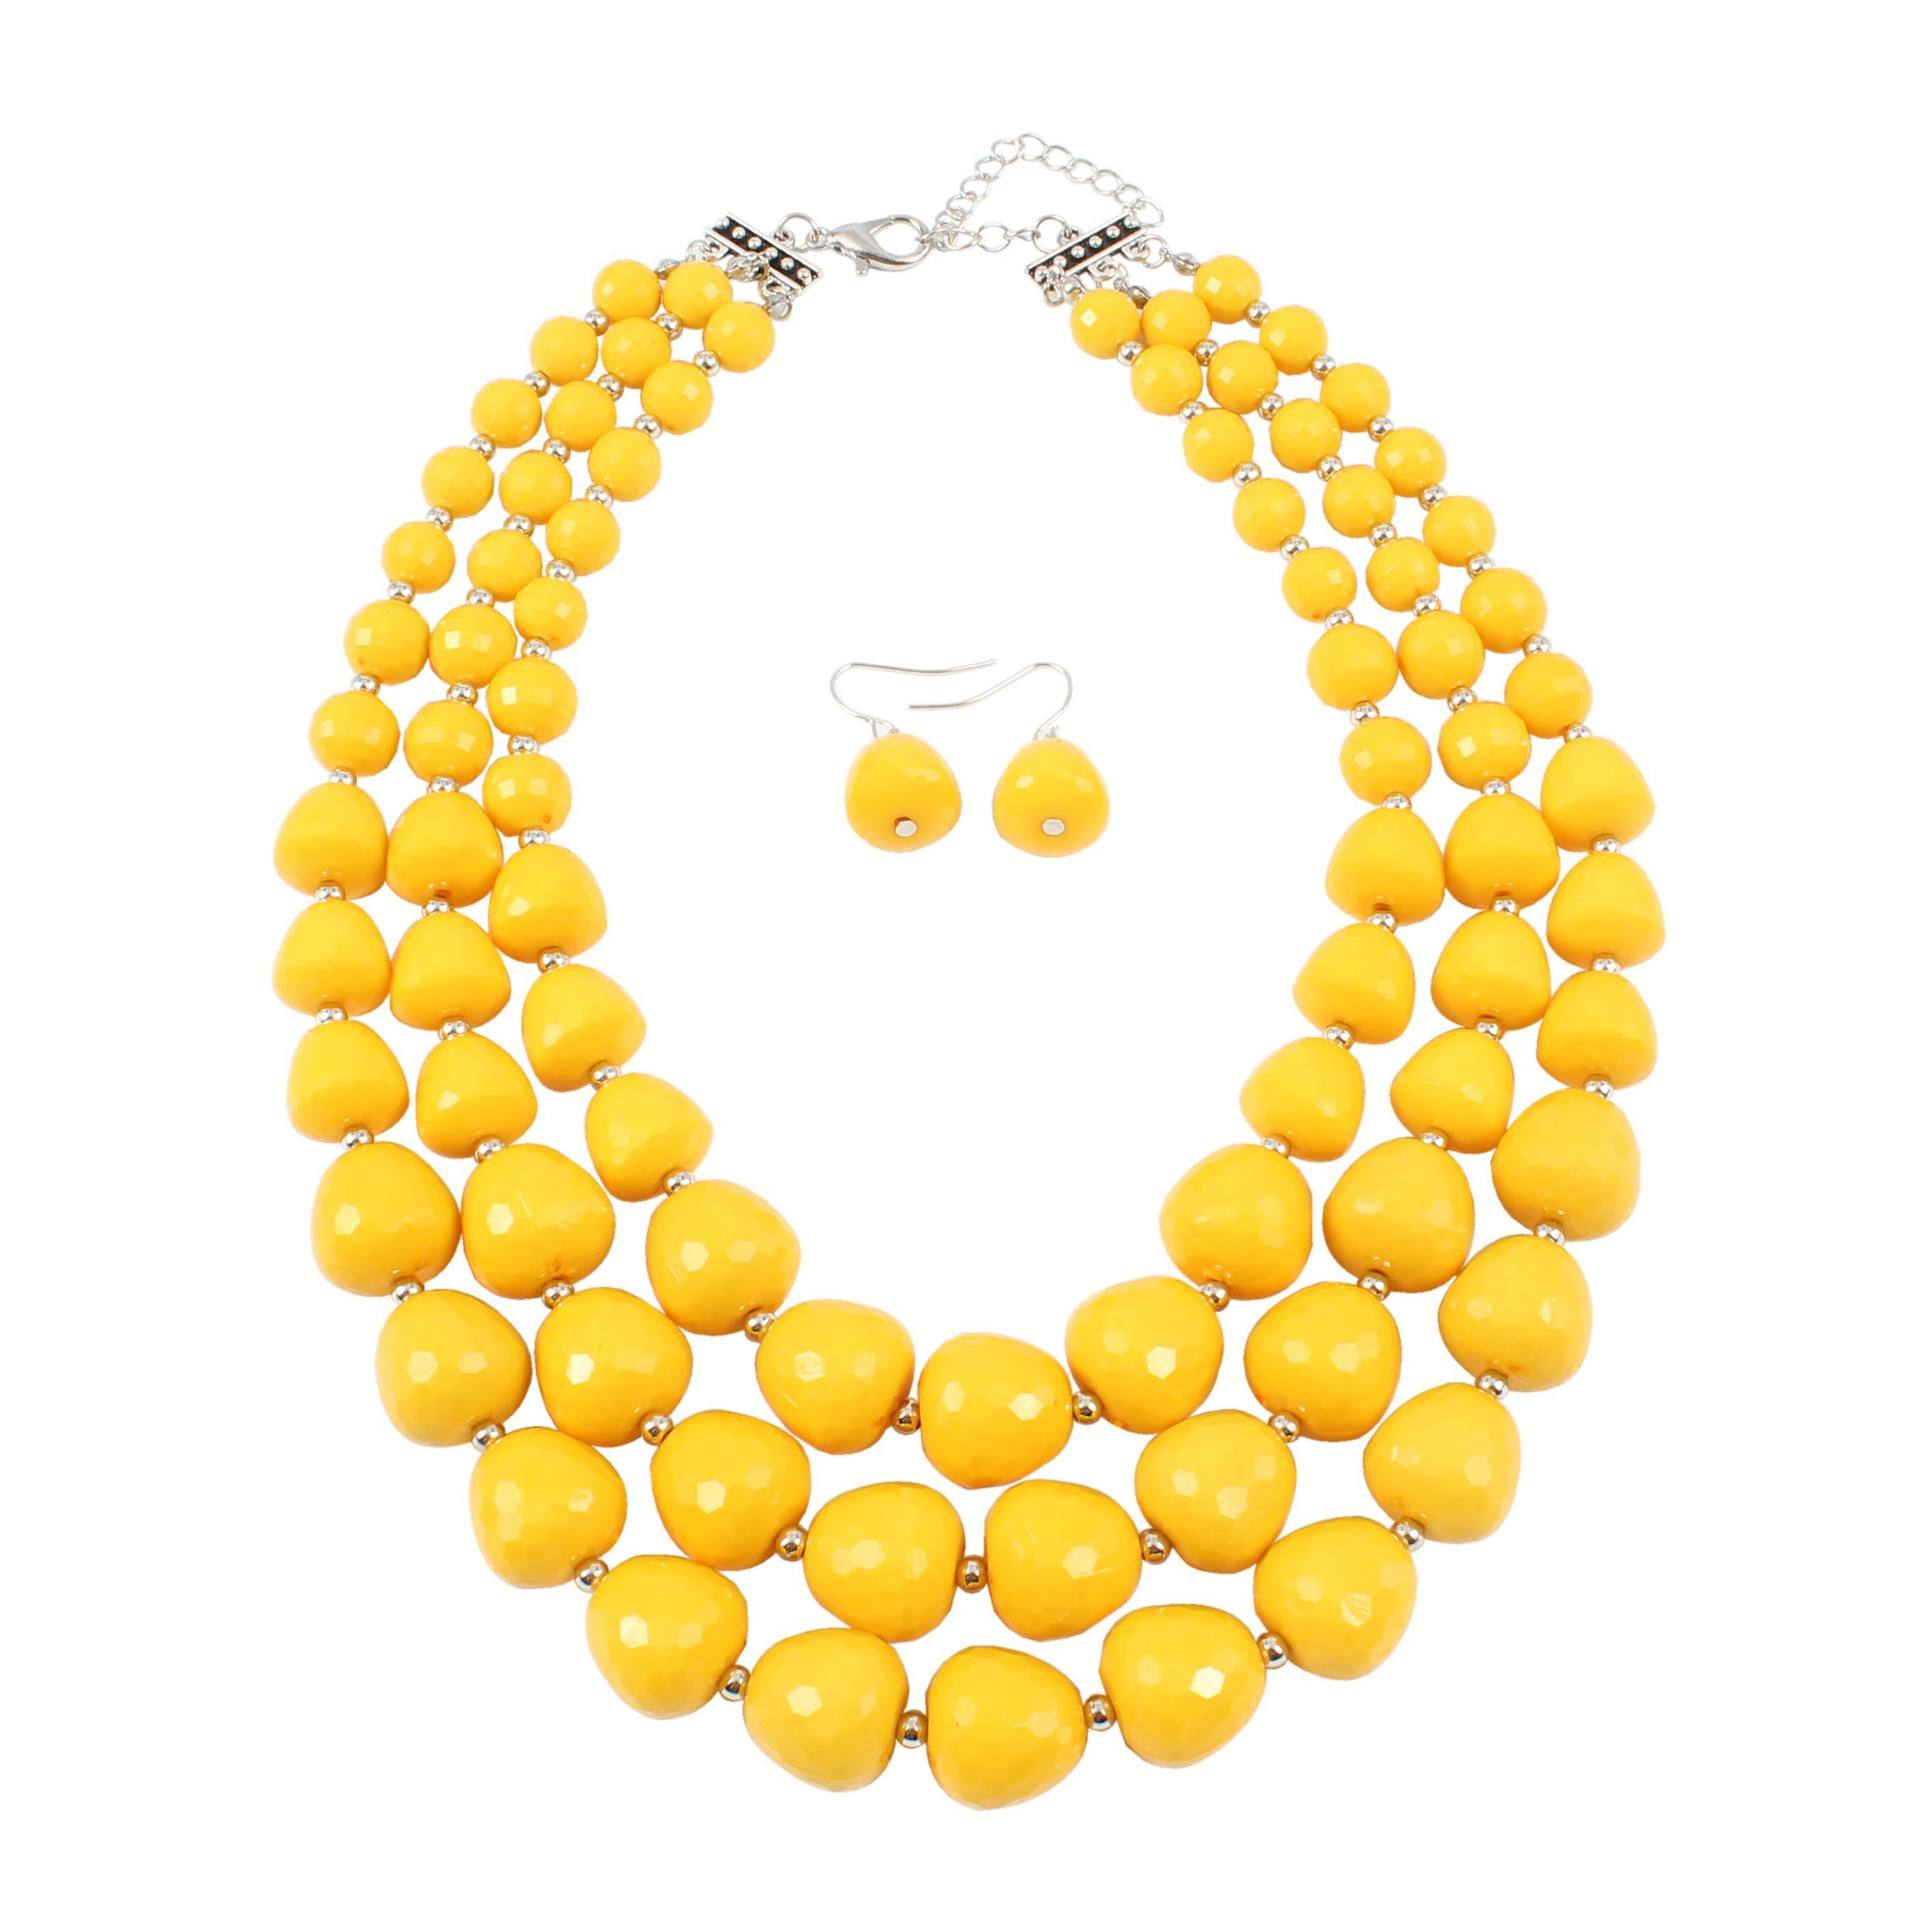 Multilayer handmade exaggerated statement Yellow Acrylic beaded necklace for women